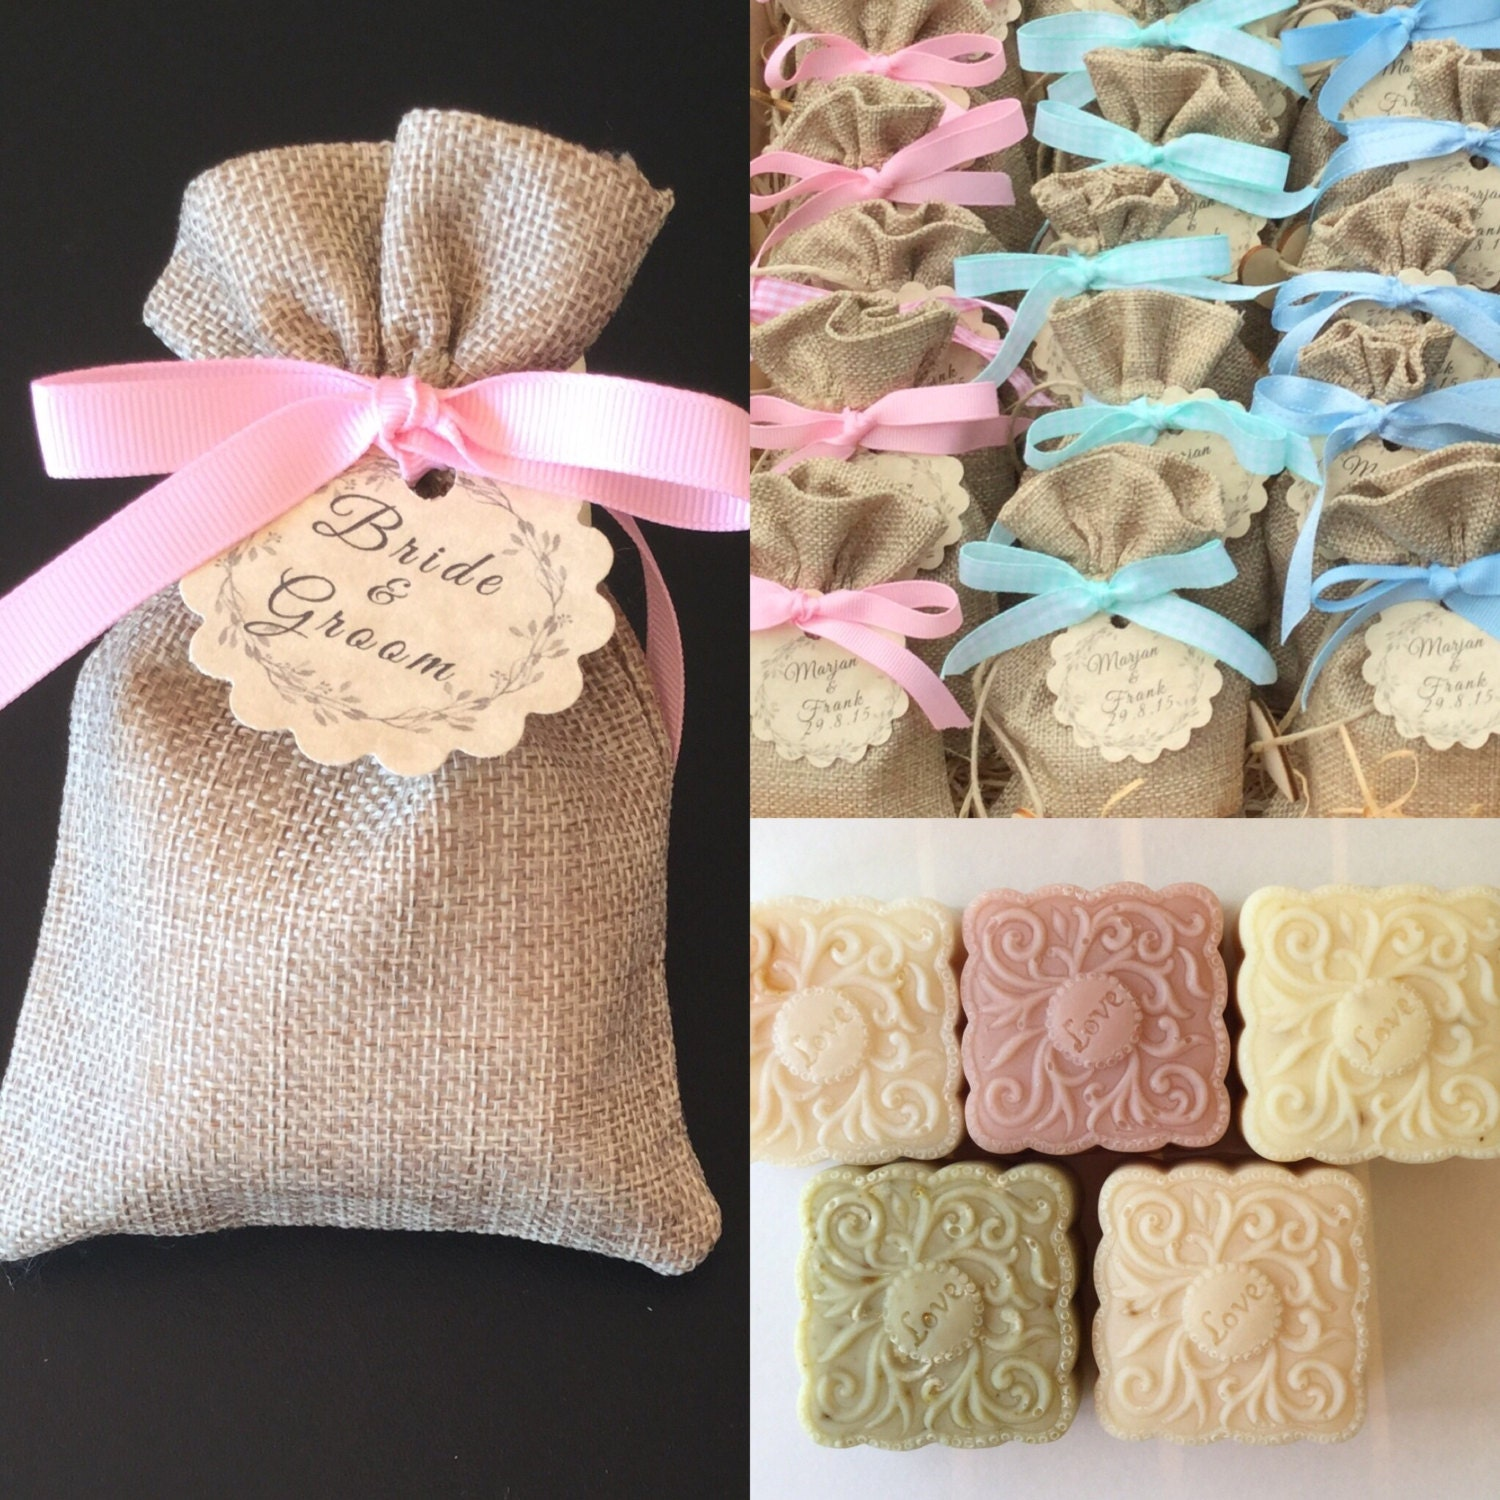 weddings20 soaps in burlap bagswedding favors baby shower